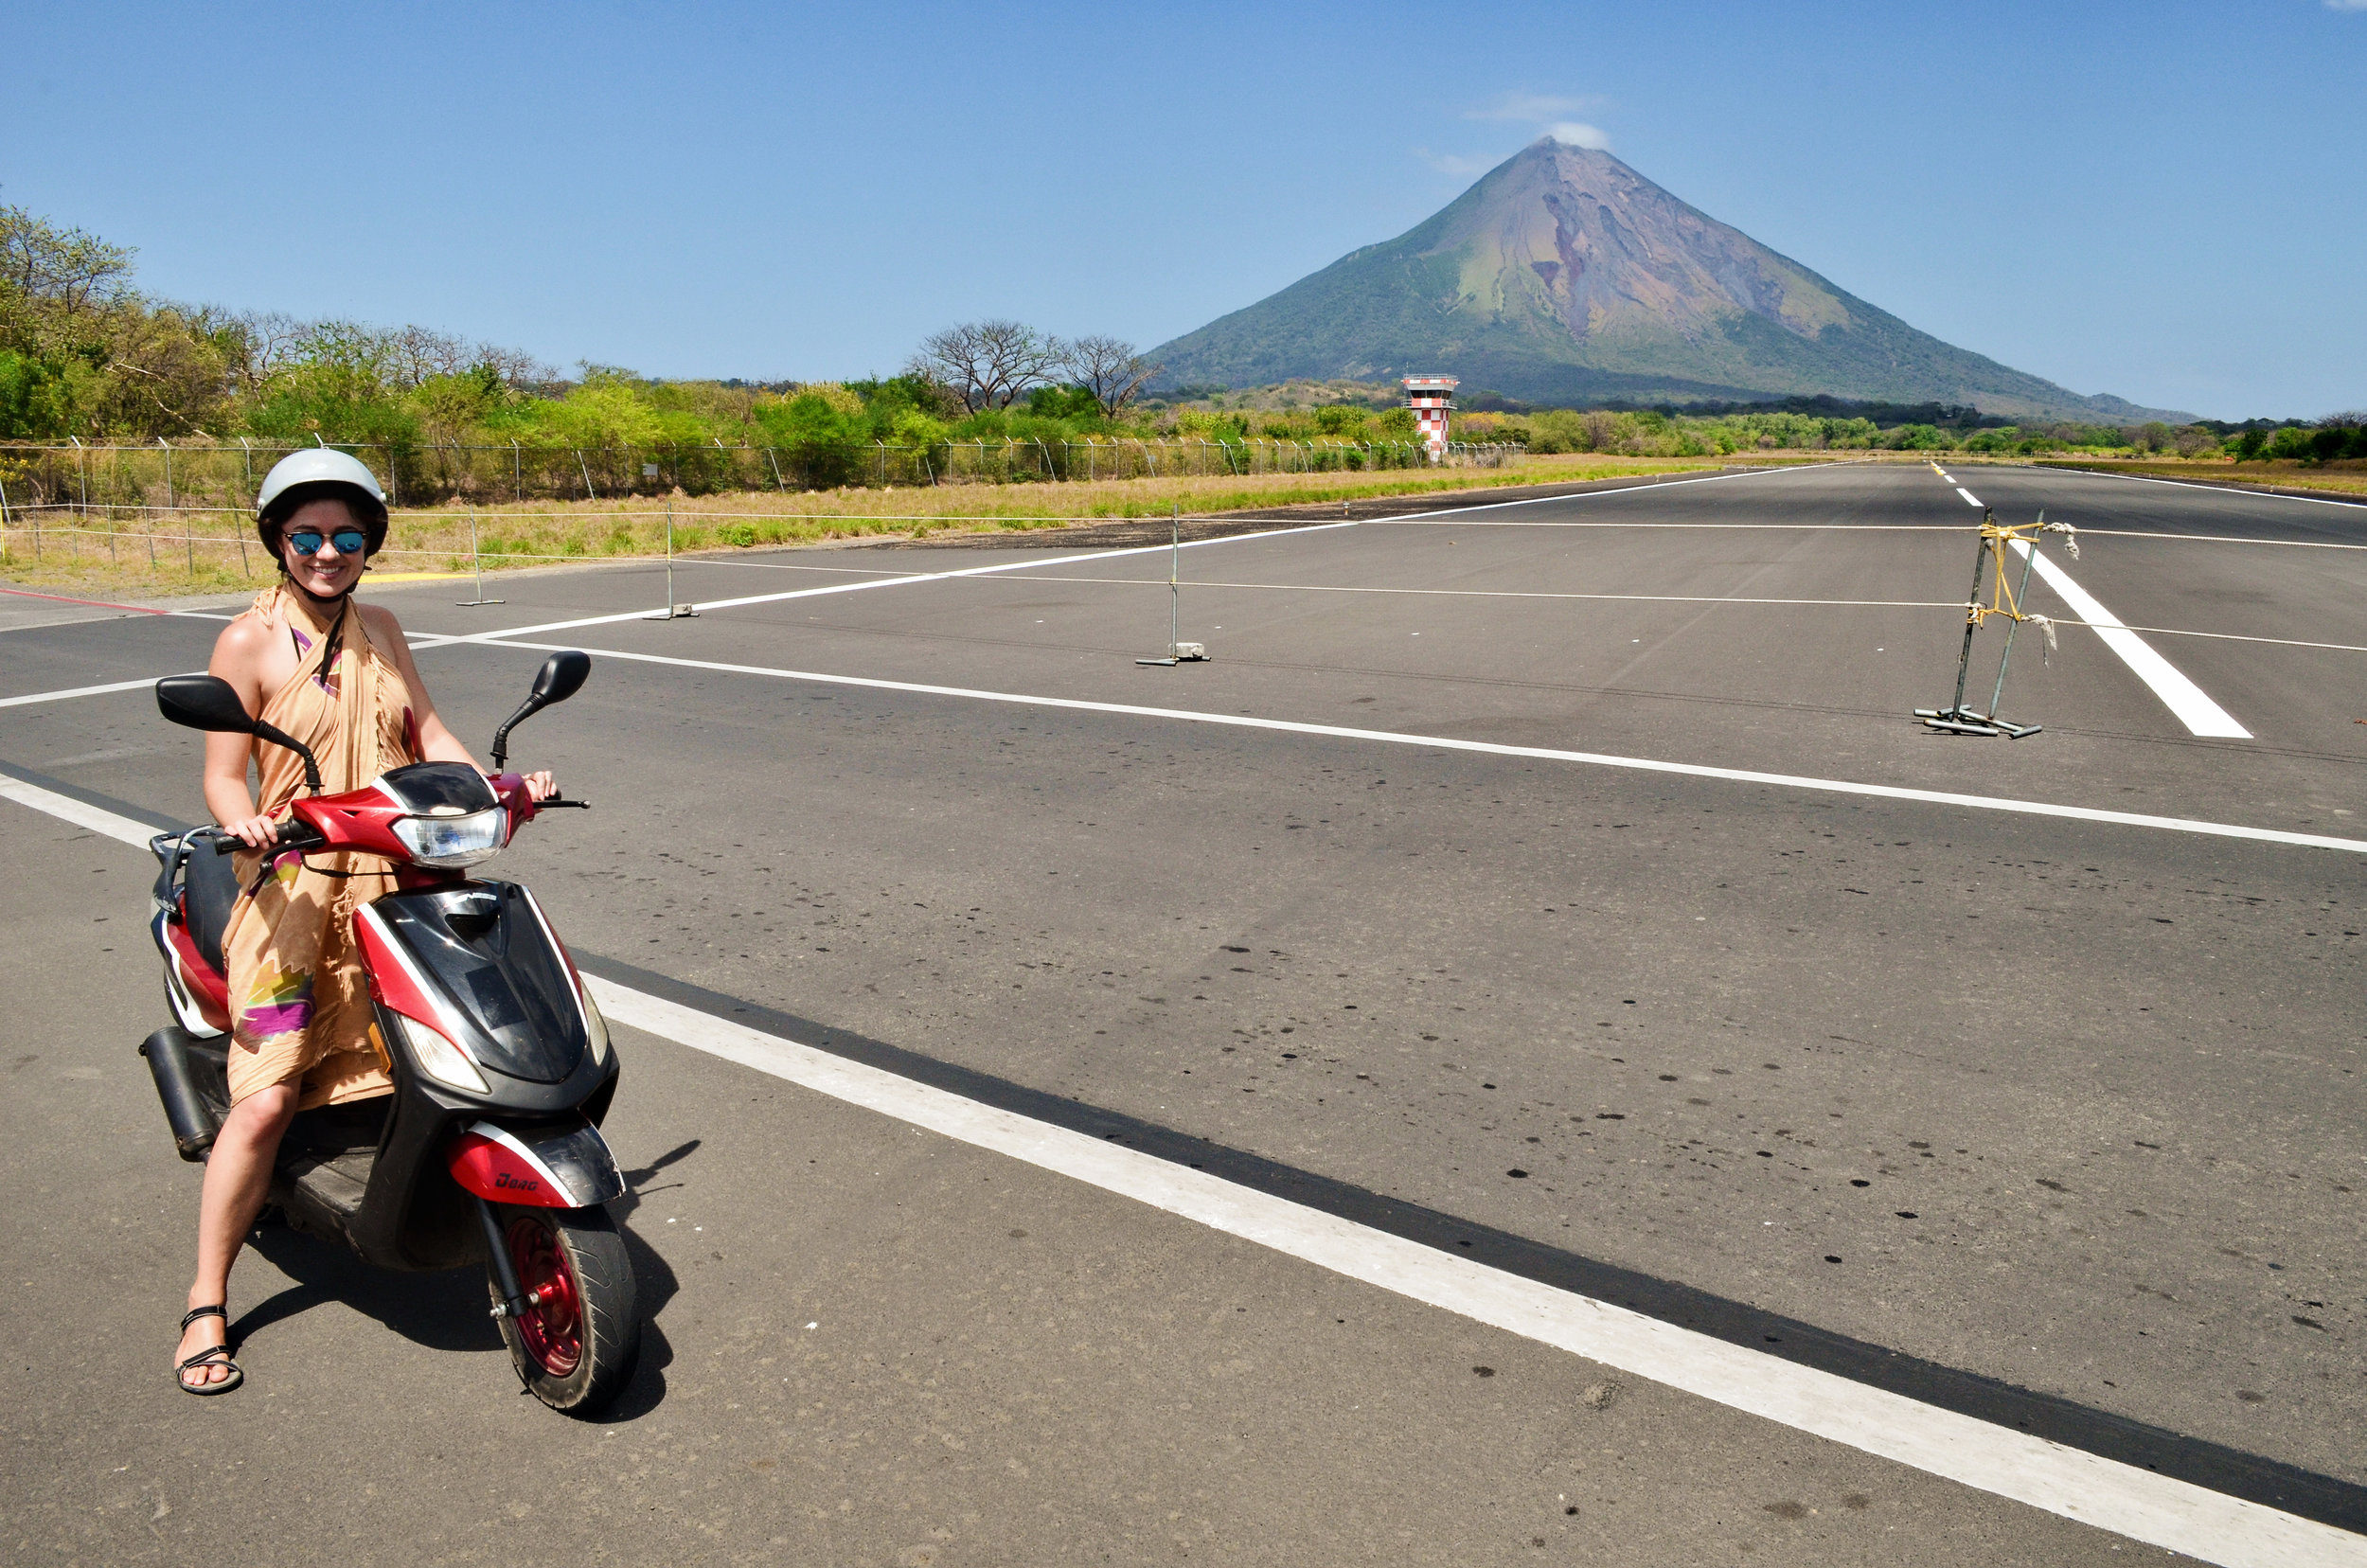 One of the best views of Volcán Concepción can be seen from the airstrip of the island's airport.